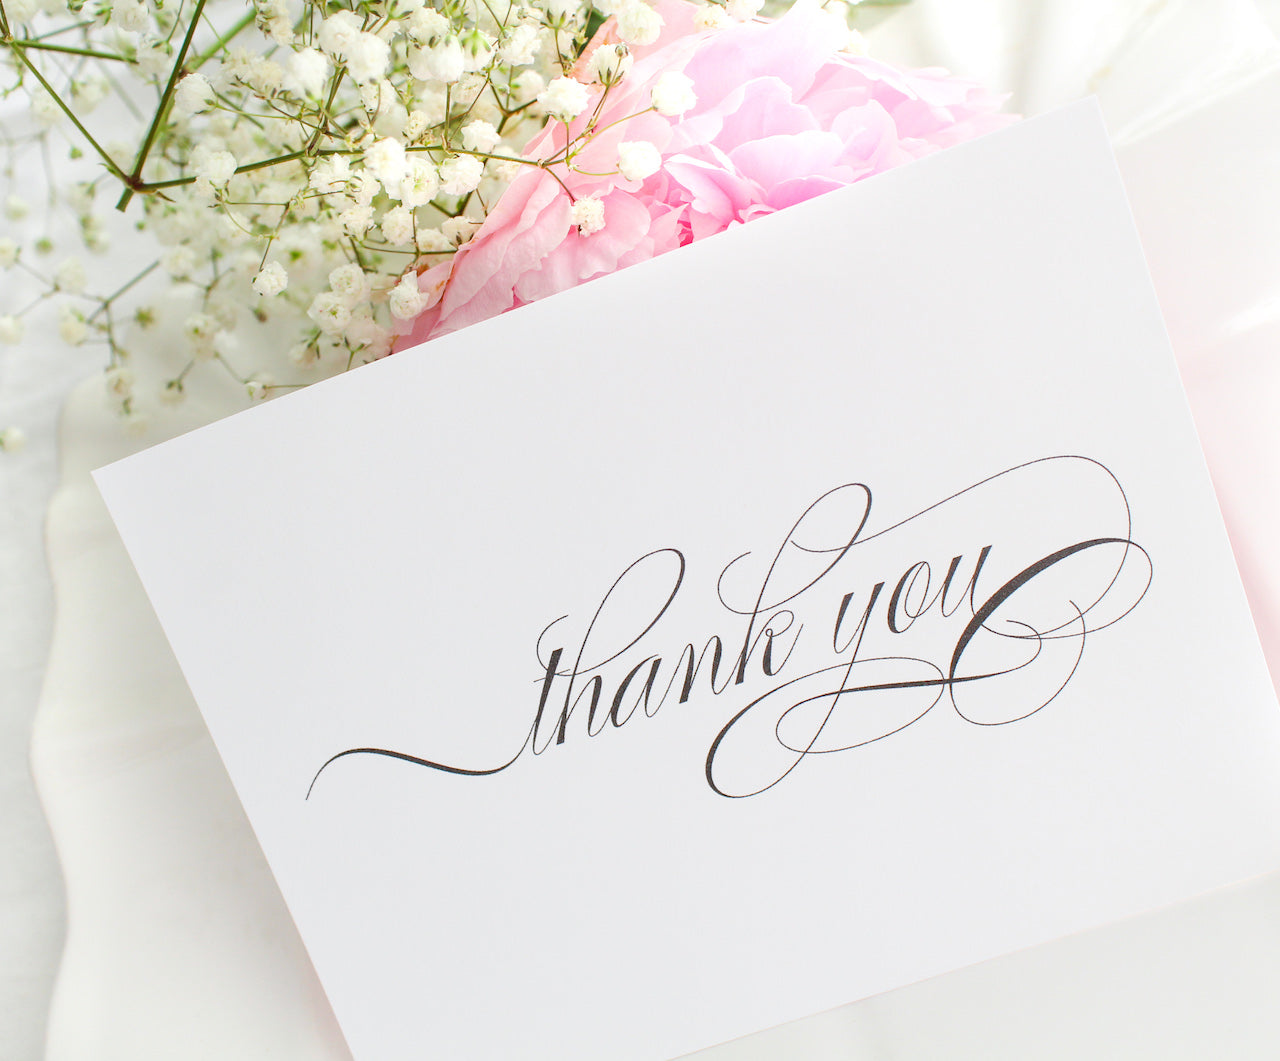 elegant calligraphy thank you notecards sustainably printed on 100% recycled paper